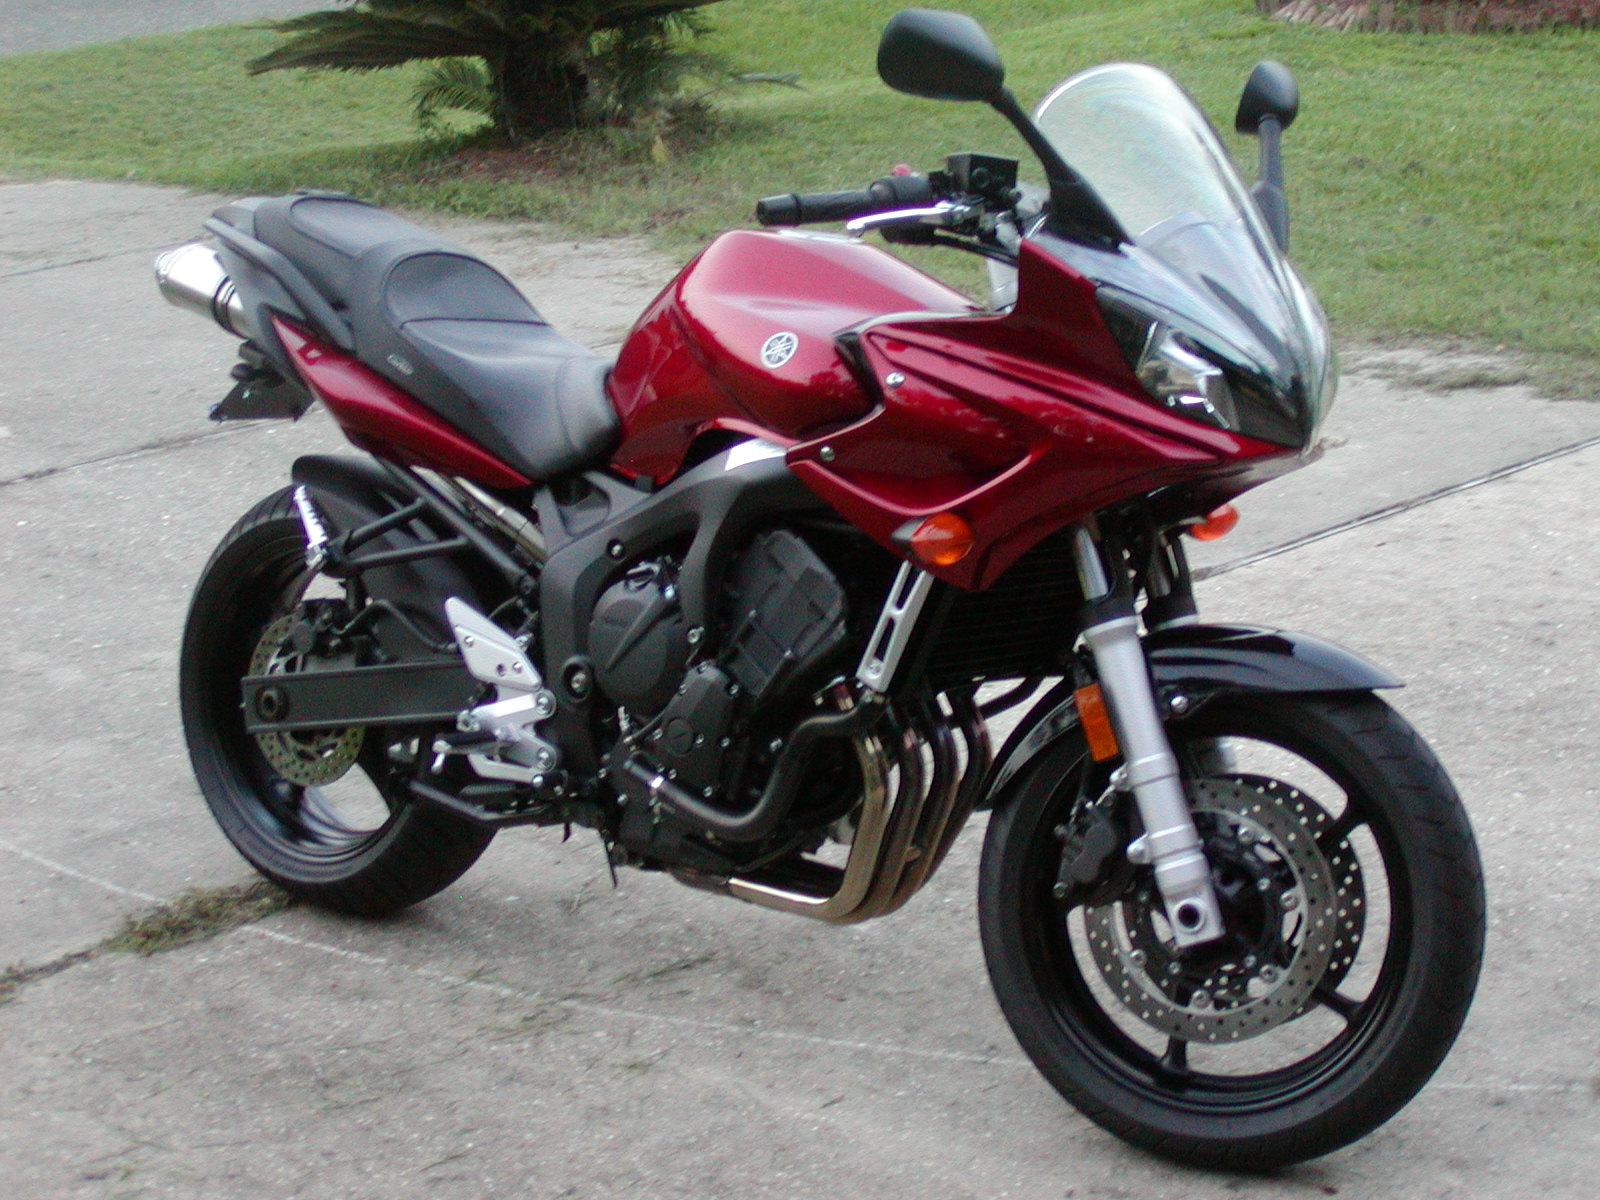 Joining the ranks: New fastest red '06 FZ6! :D - Page 2 - Sportbikes.net